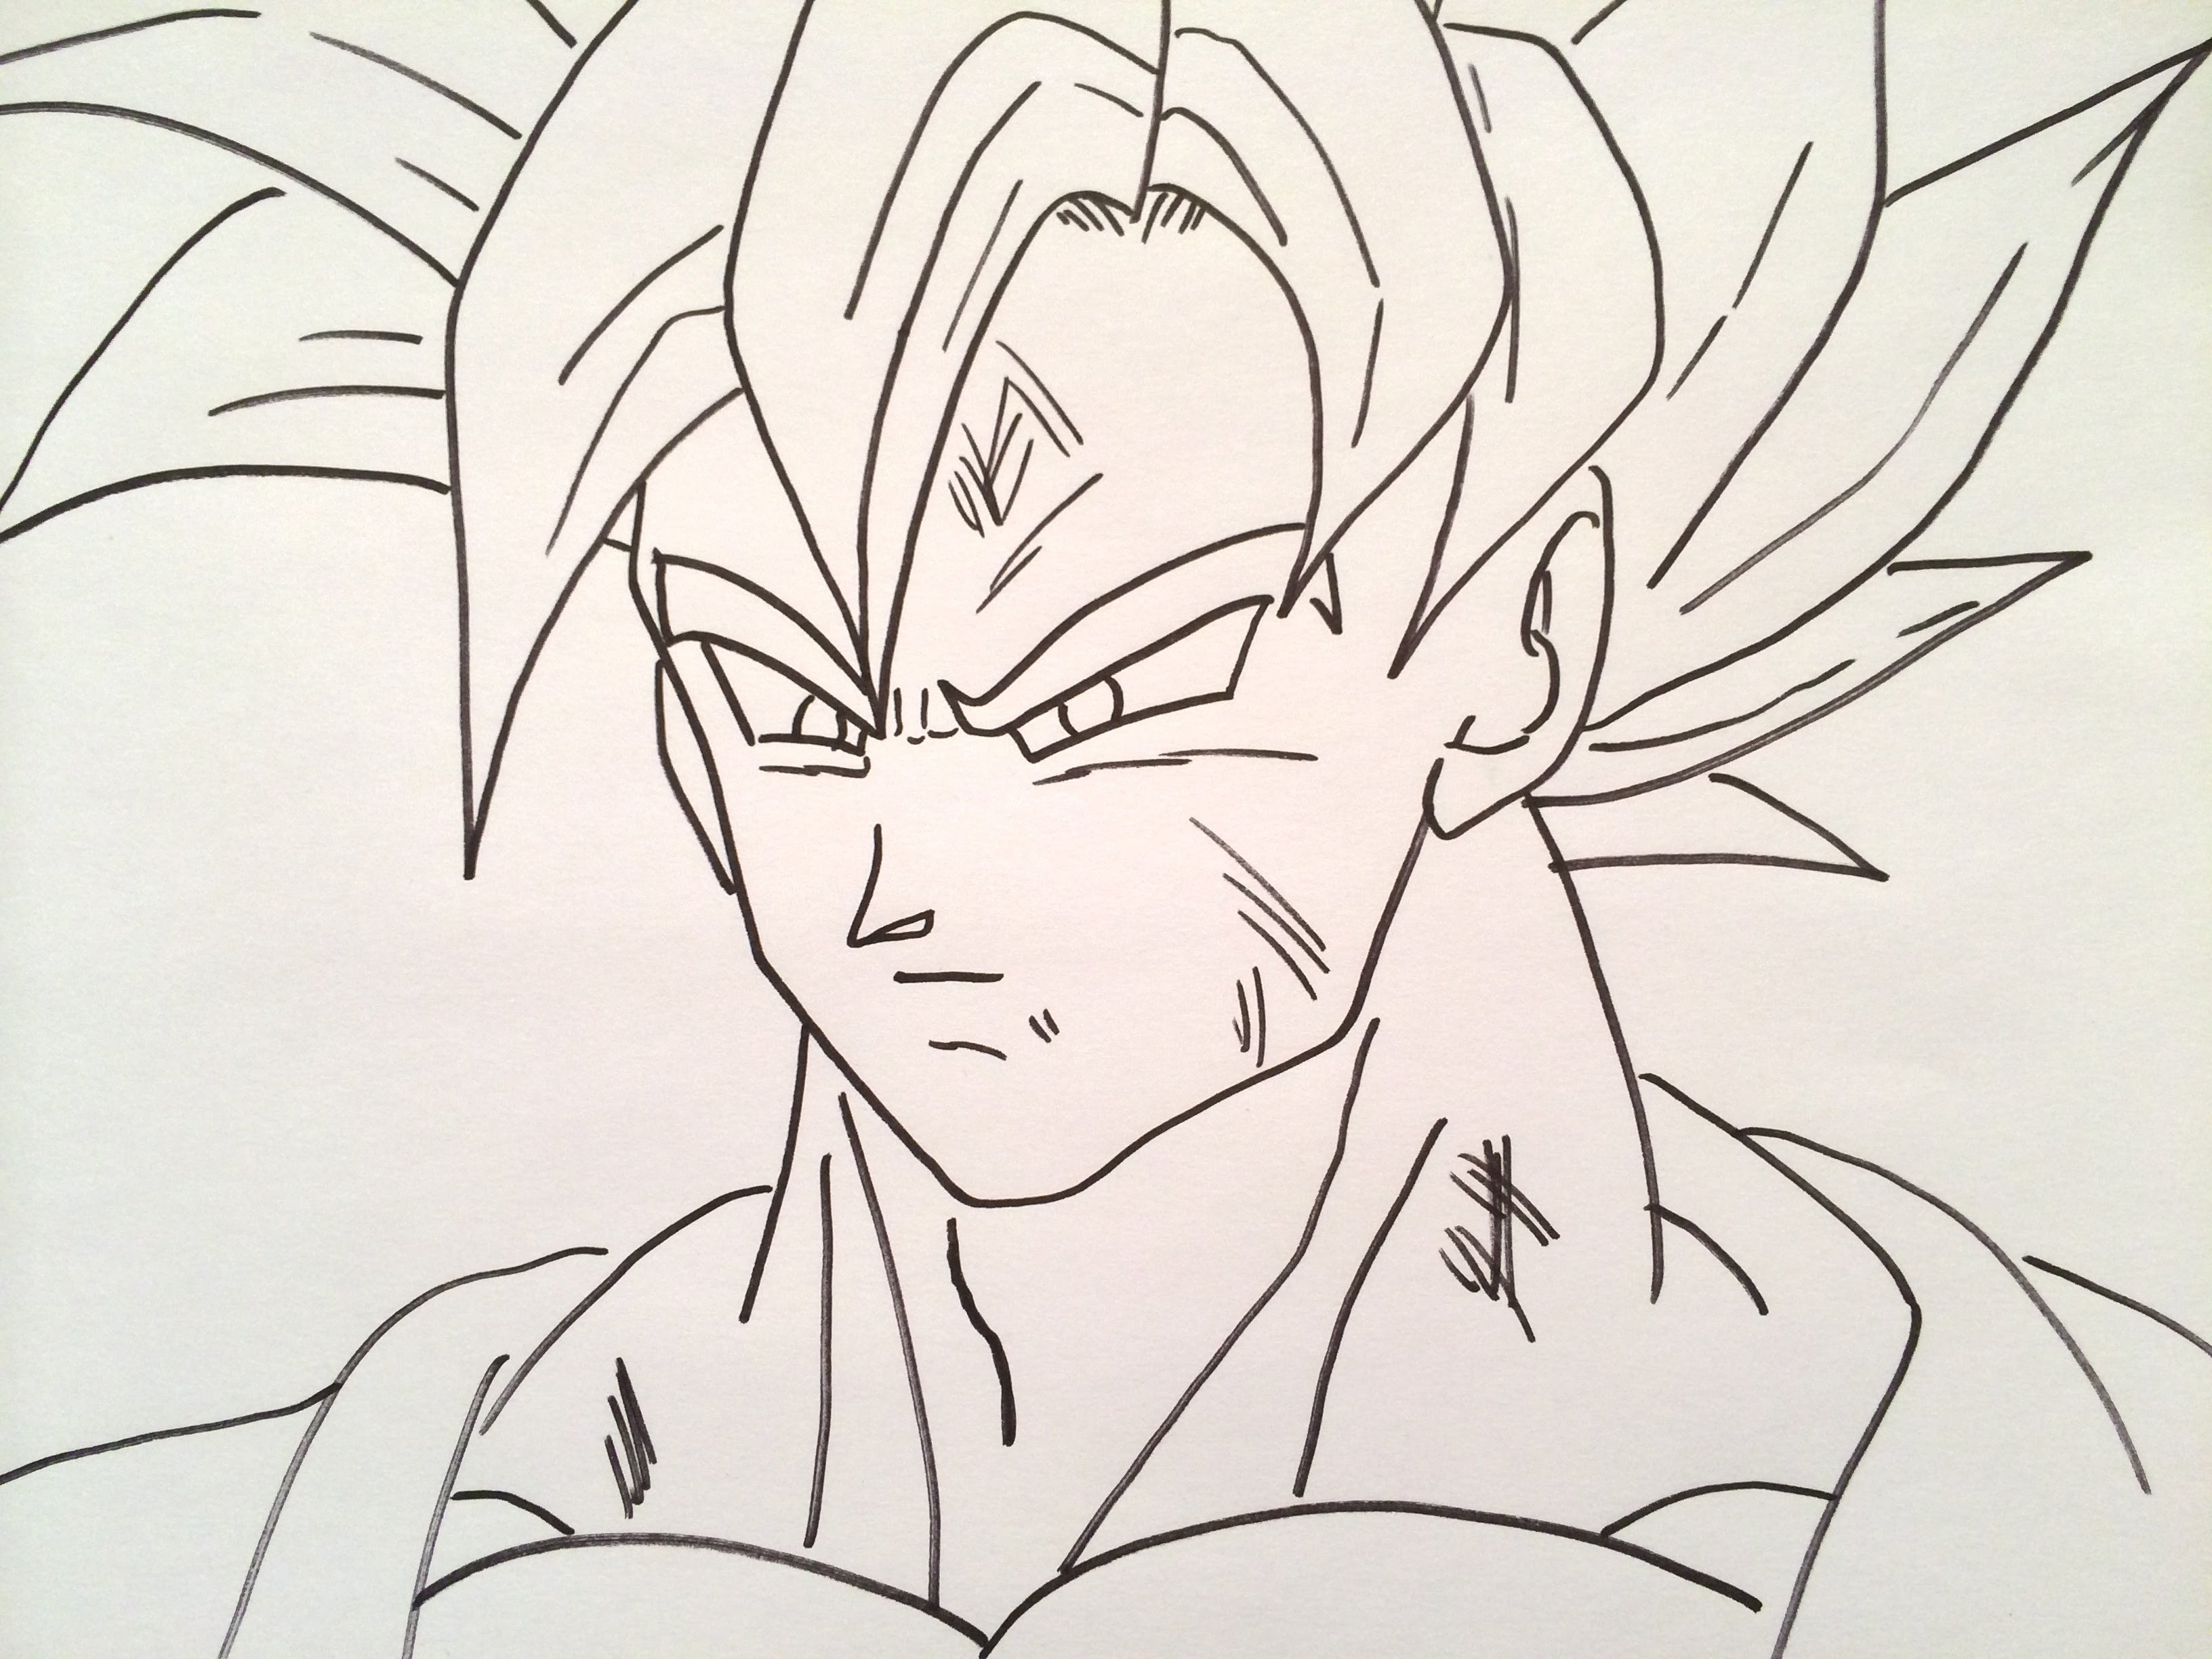 3264x2448 Goku Face Drawing Super Saiyan How To Draw Goku Super Saiyan